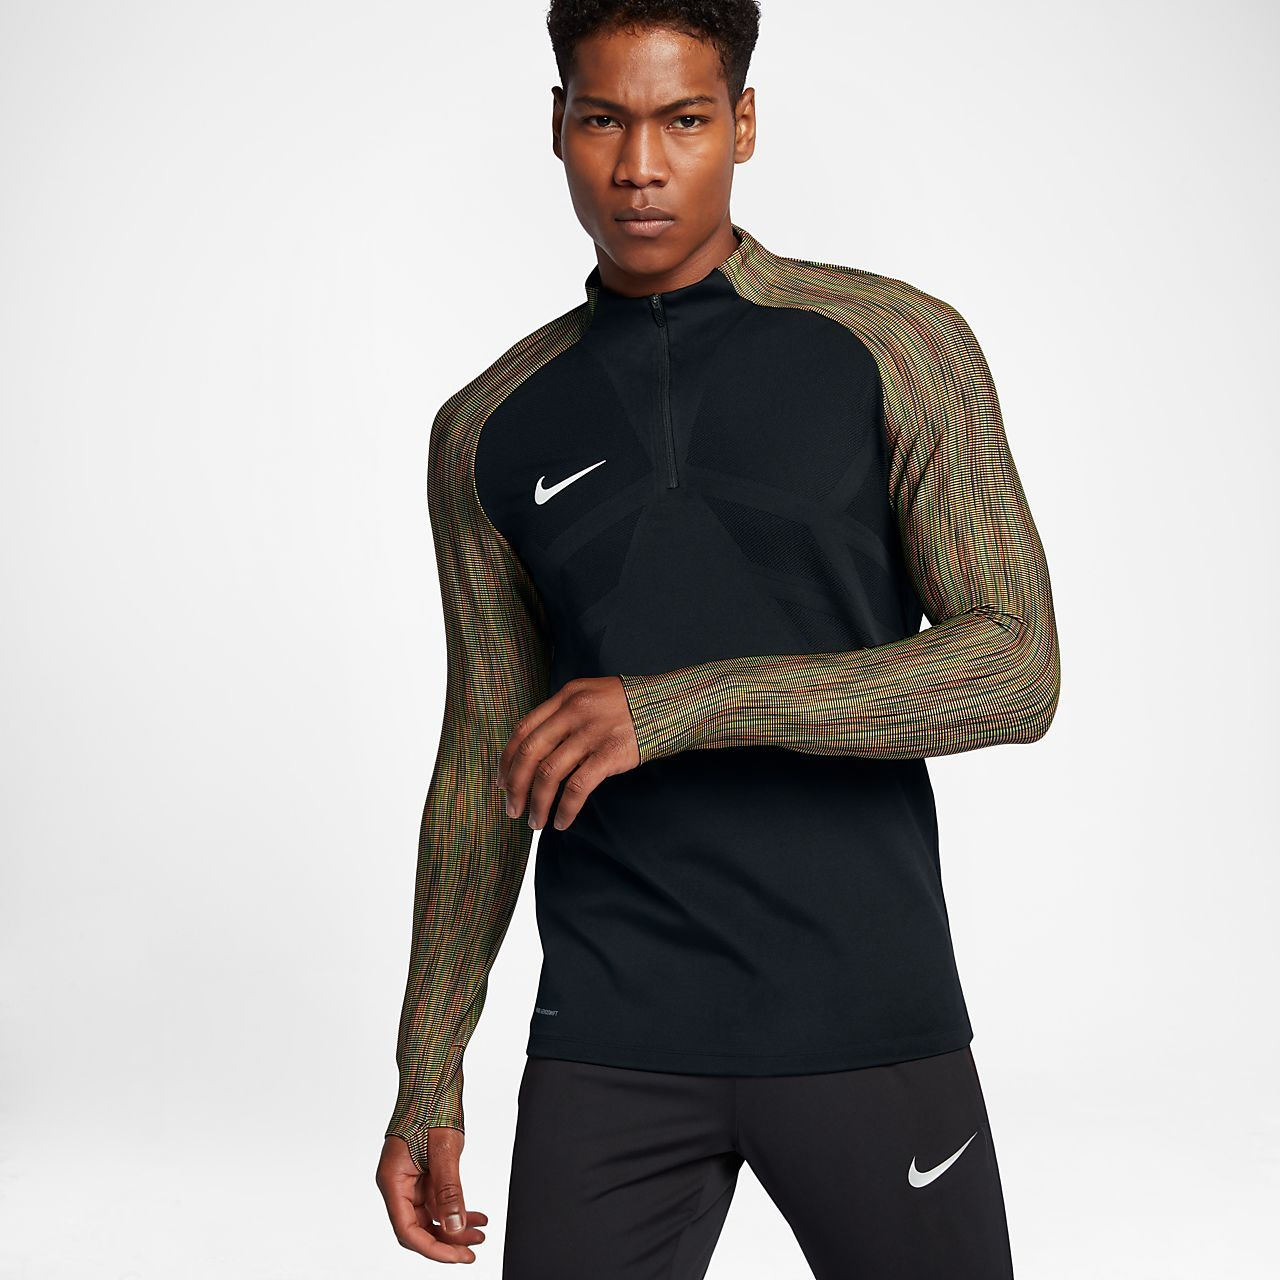 0d79cdd86 Nike AeroSwift Strike Drill Men's Football Top | Clothing and ...